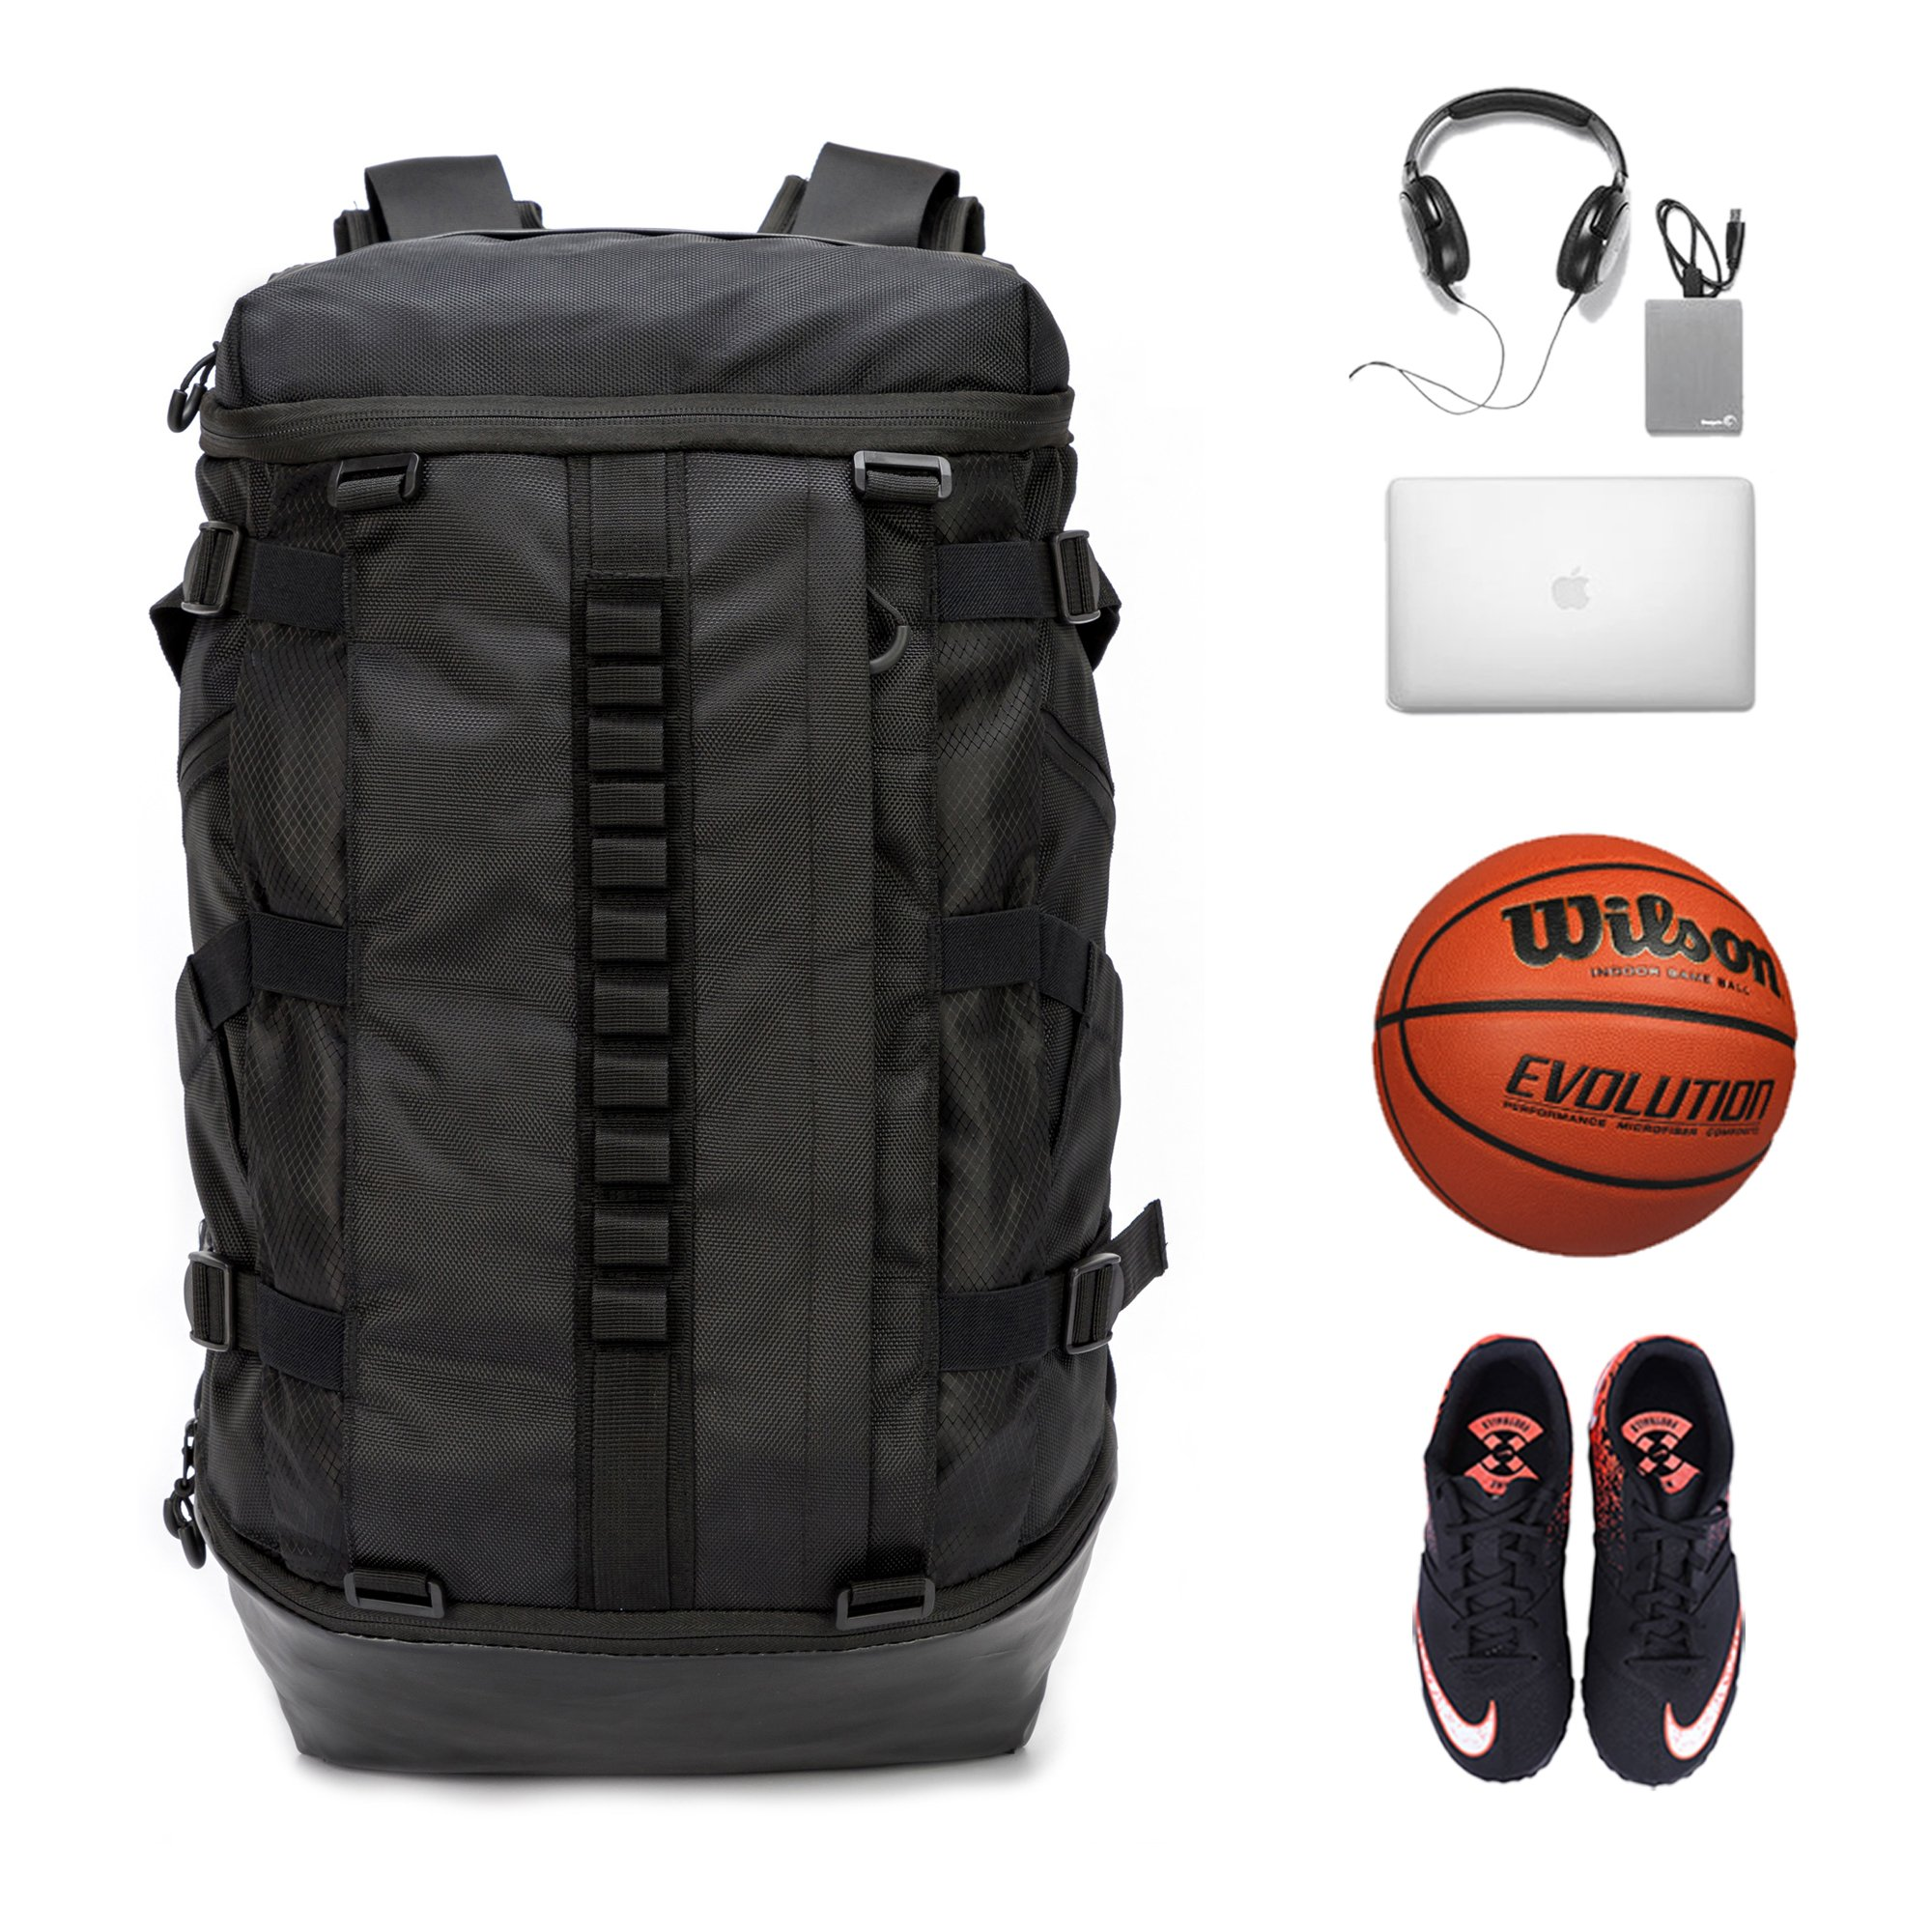 Trailkicker Sports Backpack, 30L Unisex Multi-Purpose Sports Gym Backpack for Soccer, Basketball